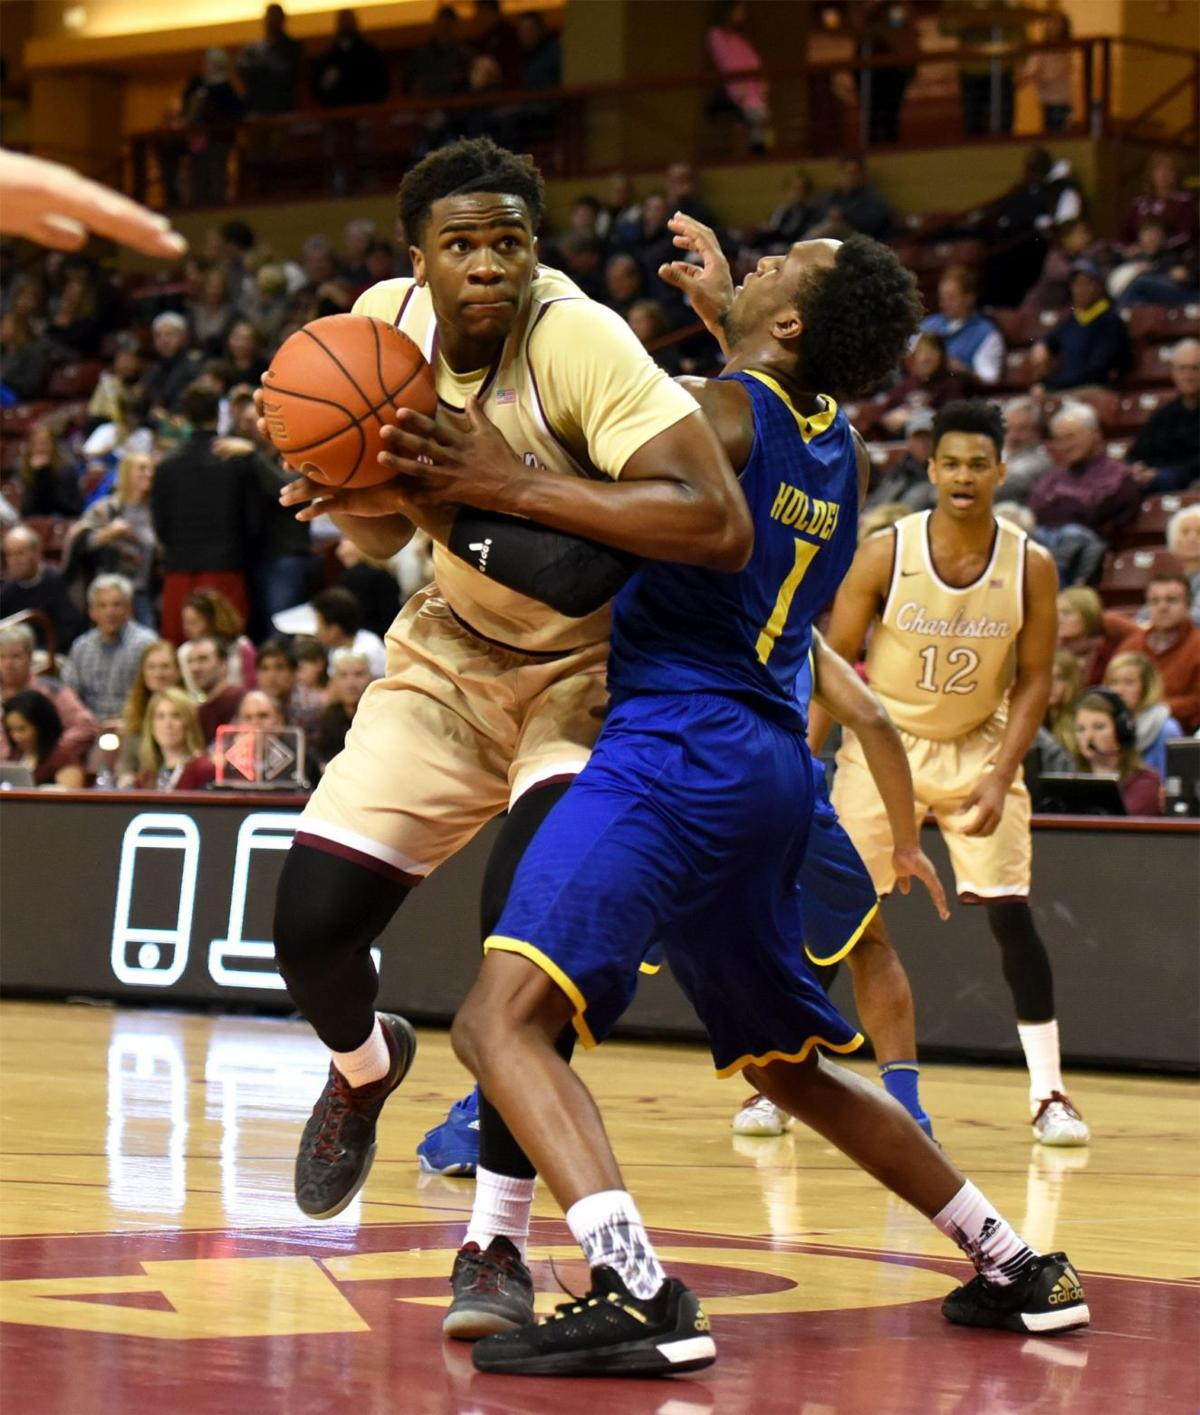 COUGARS DEN: It could get ugly Thursday night against Towson